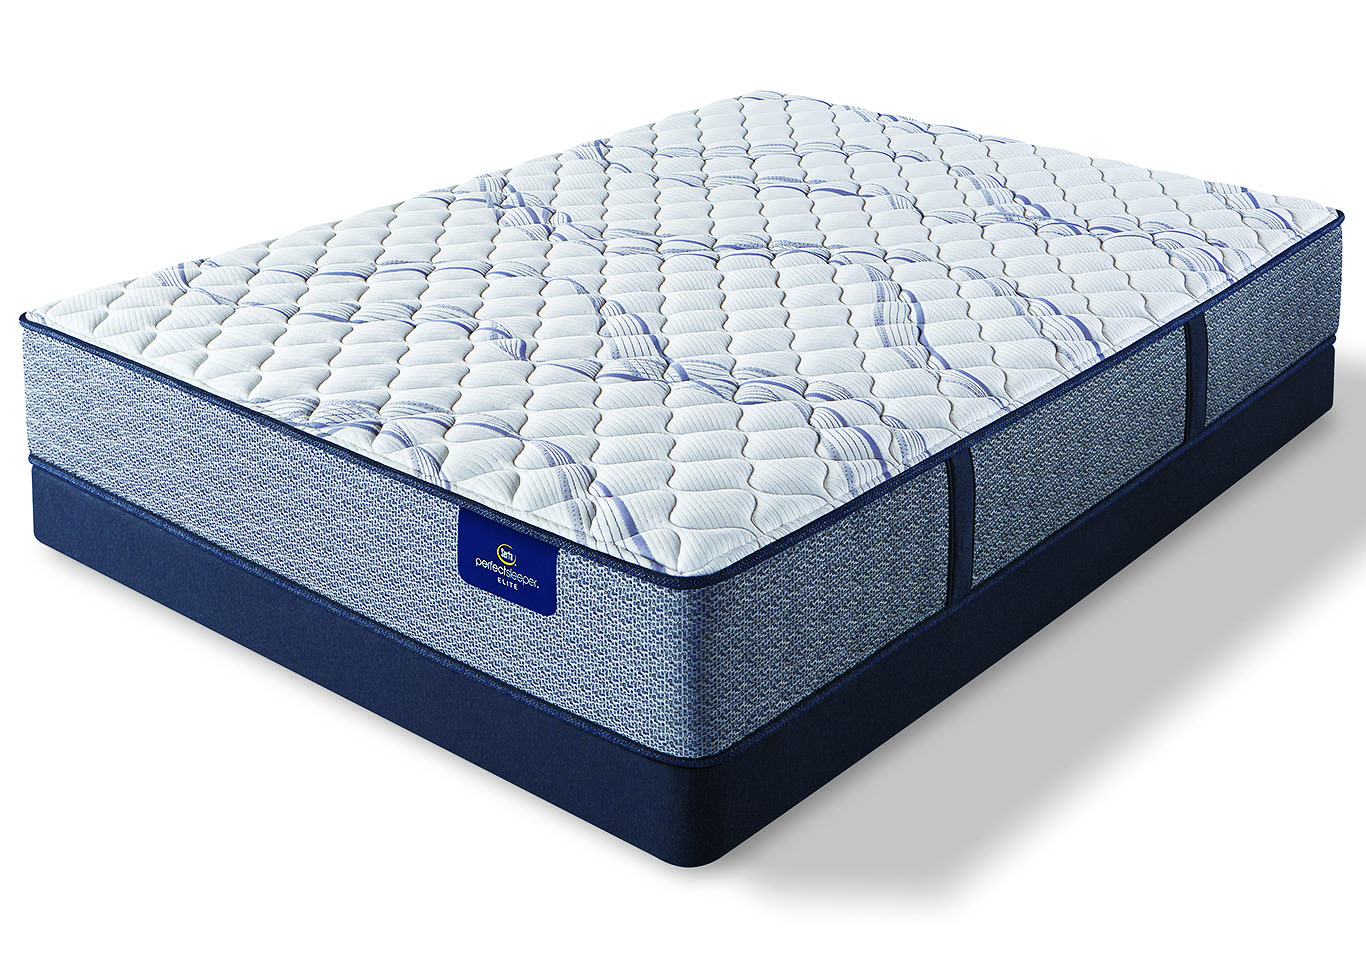 Trelleburg II Extra Firm Full Mattress,Huffman Koos